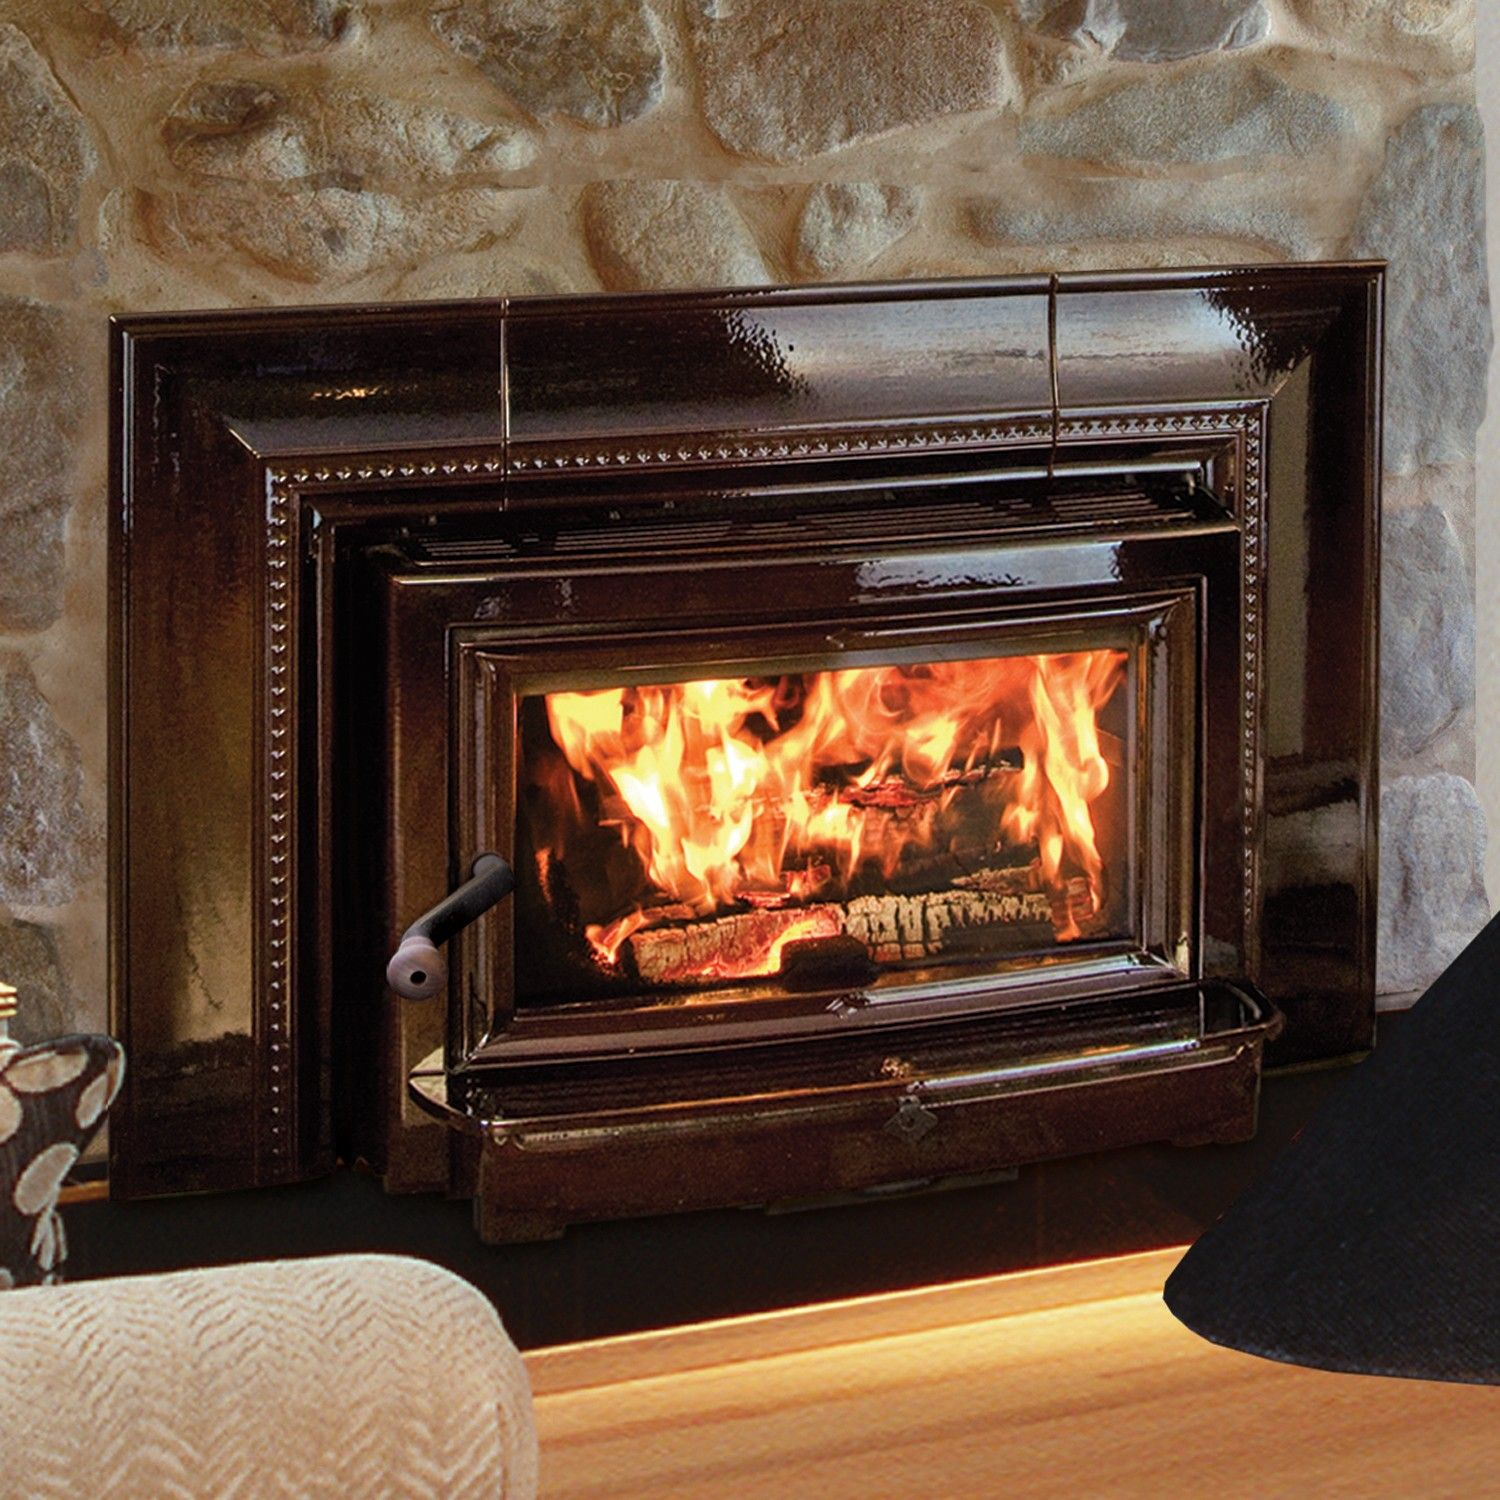 Standard Gas Fireplace Insert Dimensions Hearthstone Insert Clydesdale 8491 Wood Inserts Heats Up